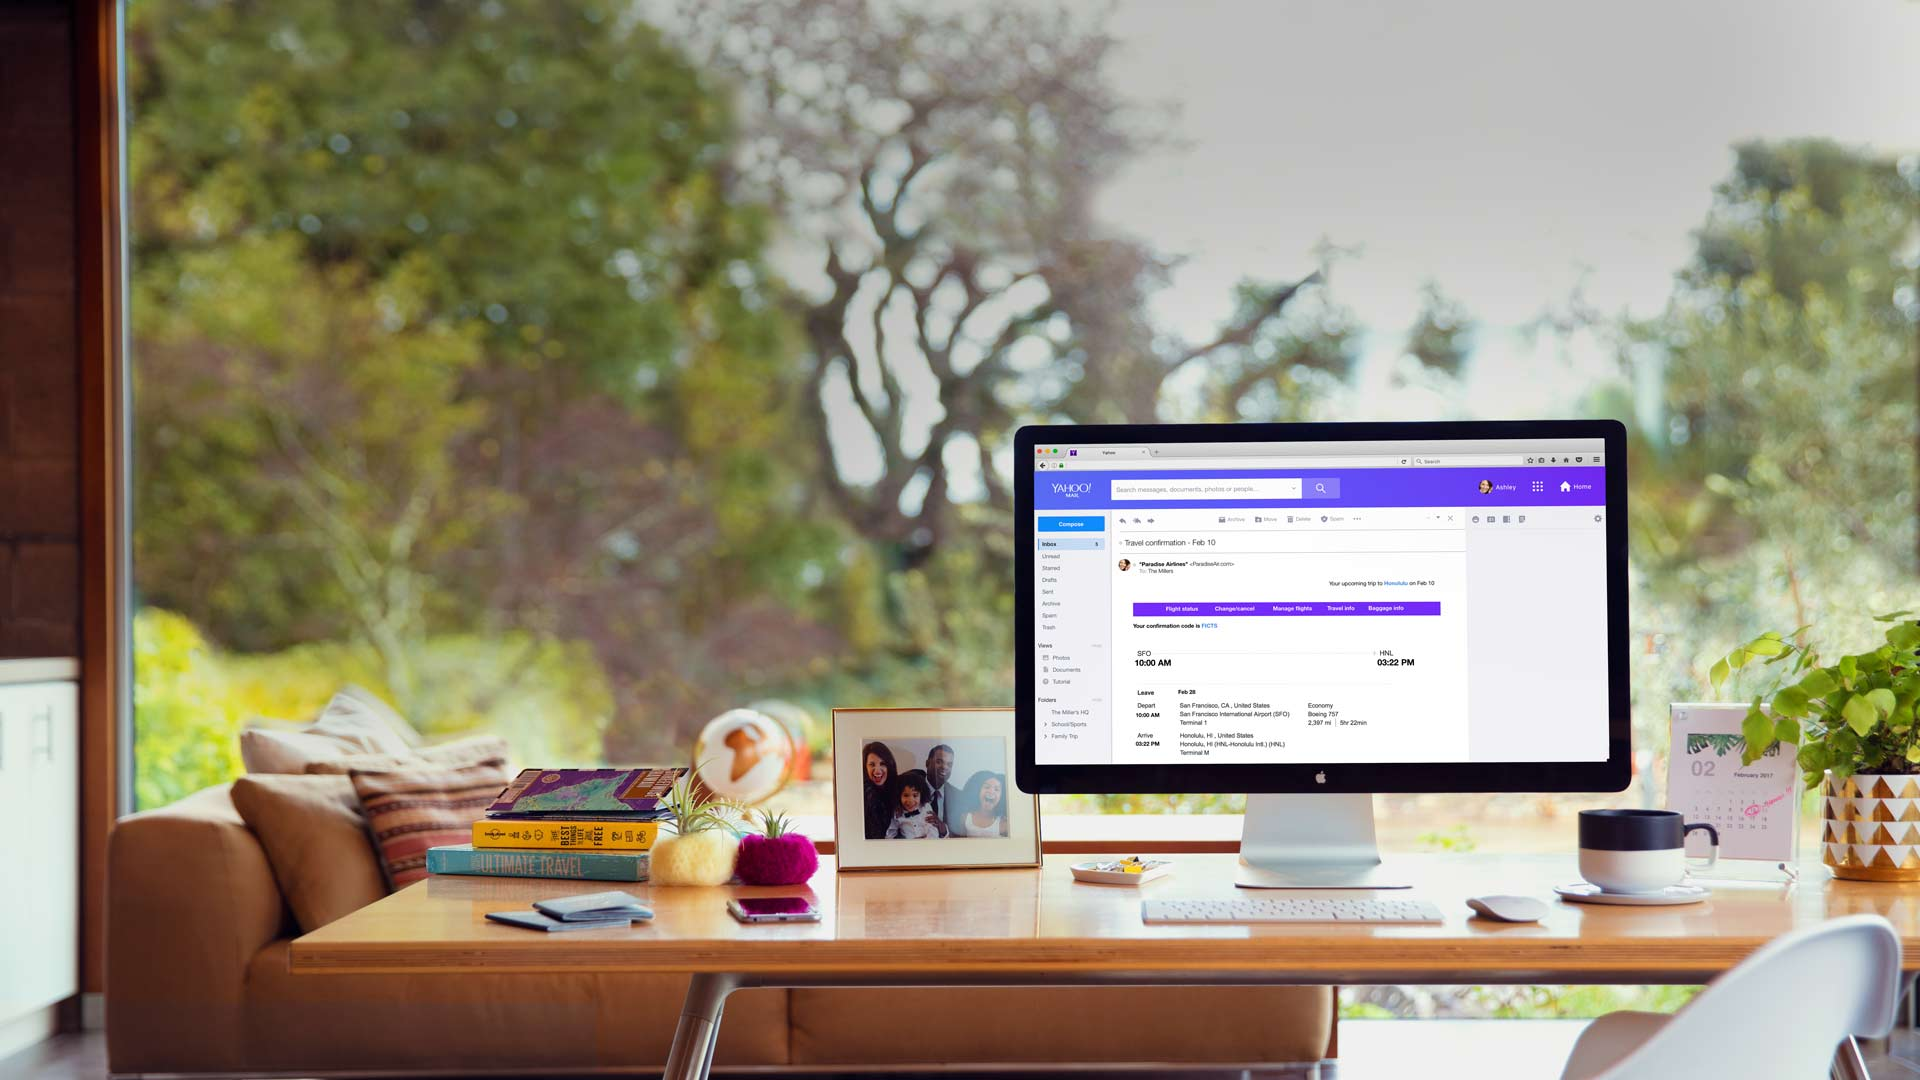 How to get rid of dating ads on yahoo mail